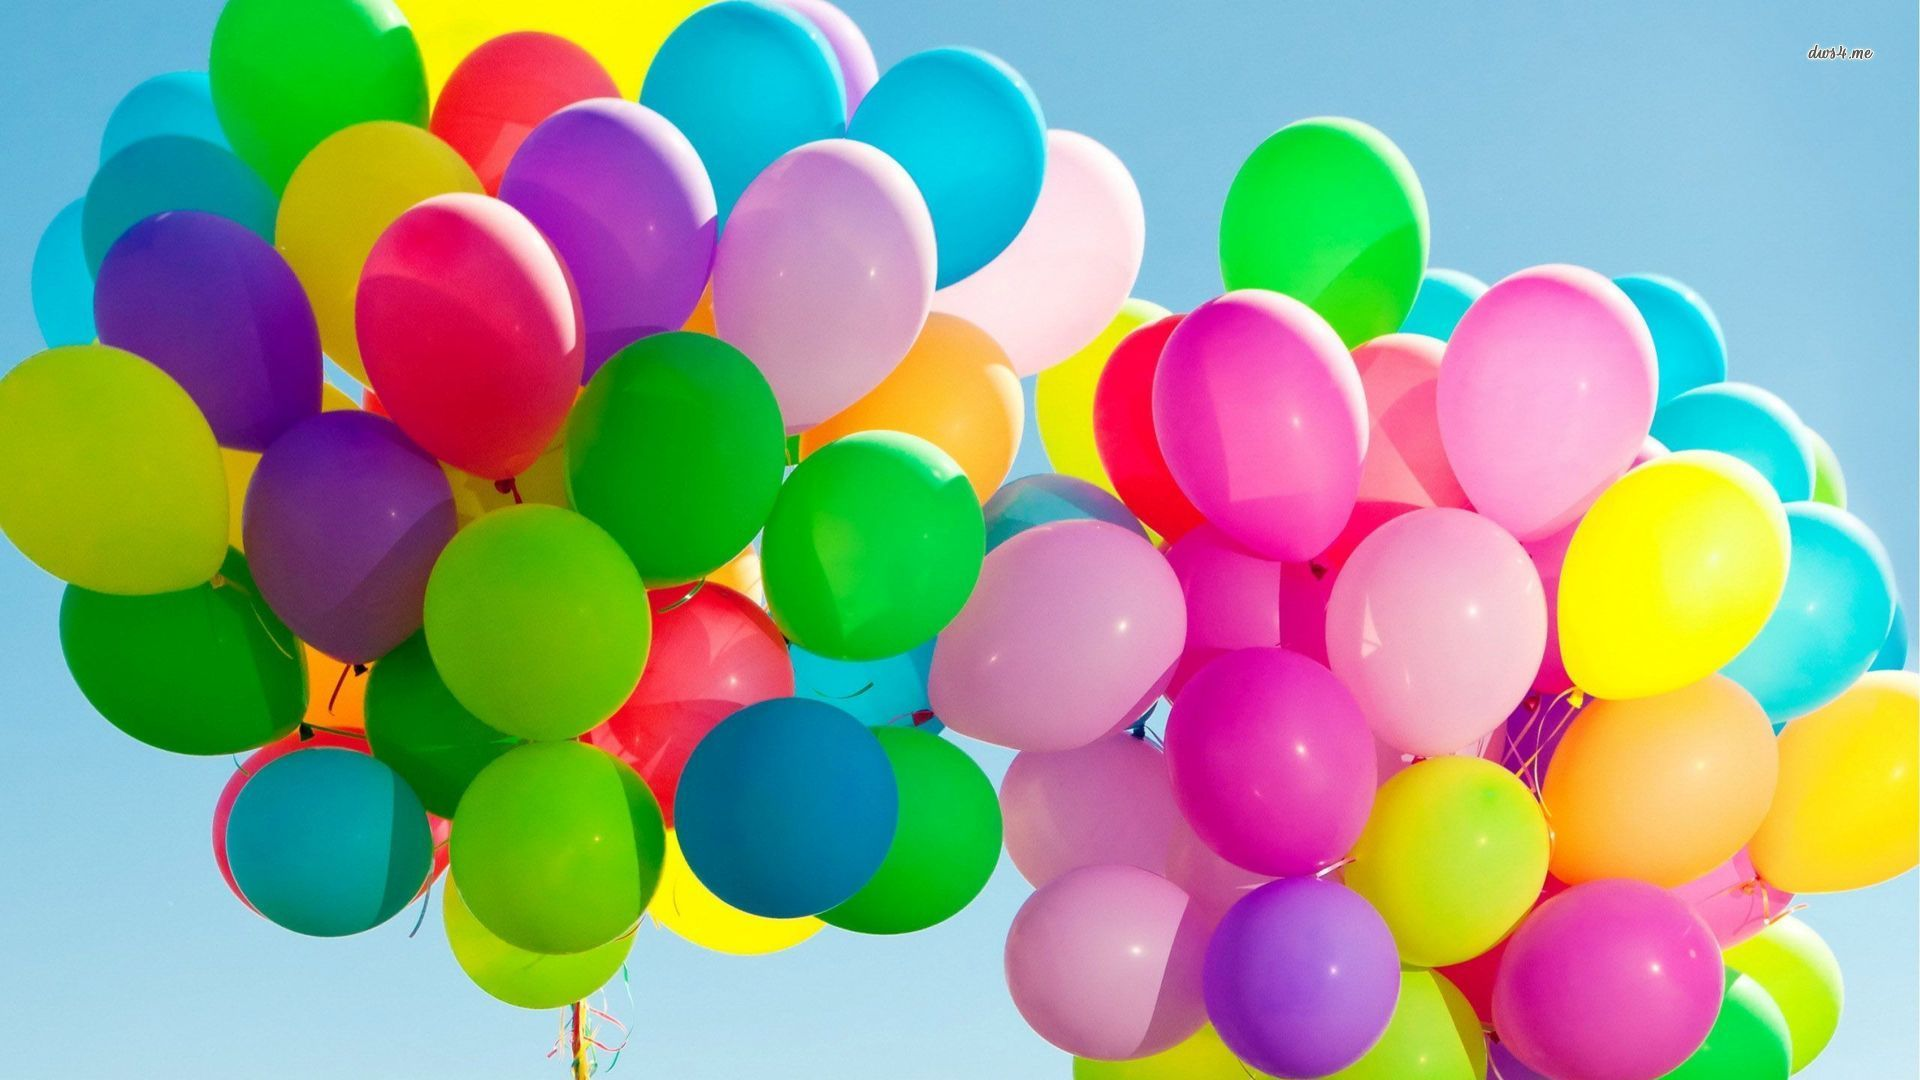 Balloons are one of the best and colorful elements for party